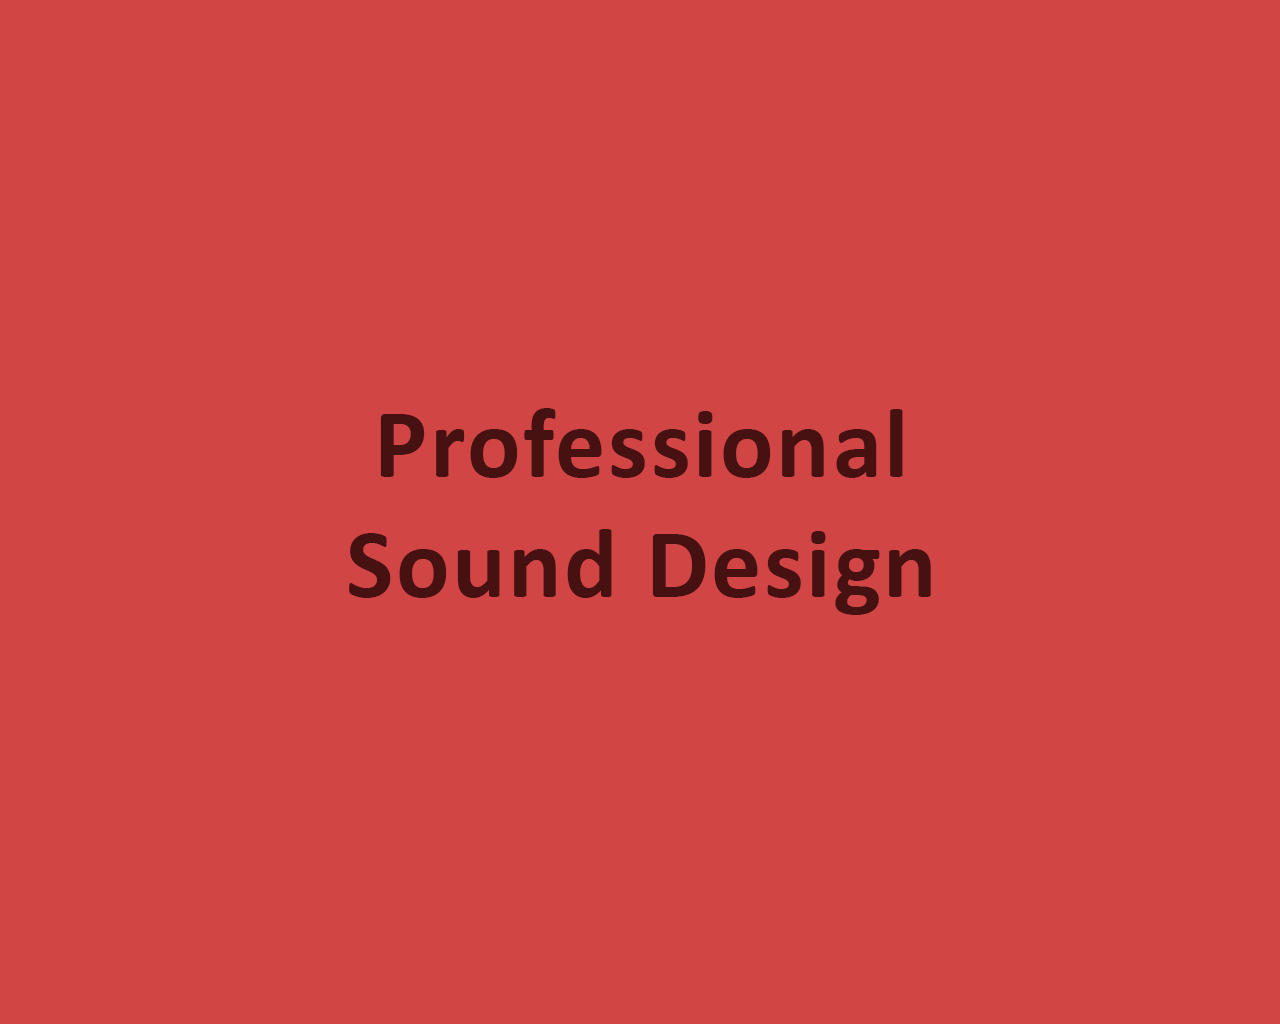 Professional Sound Design by odiusfly - 105965